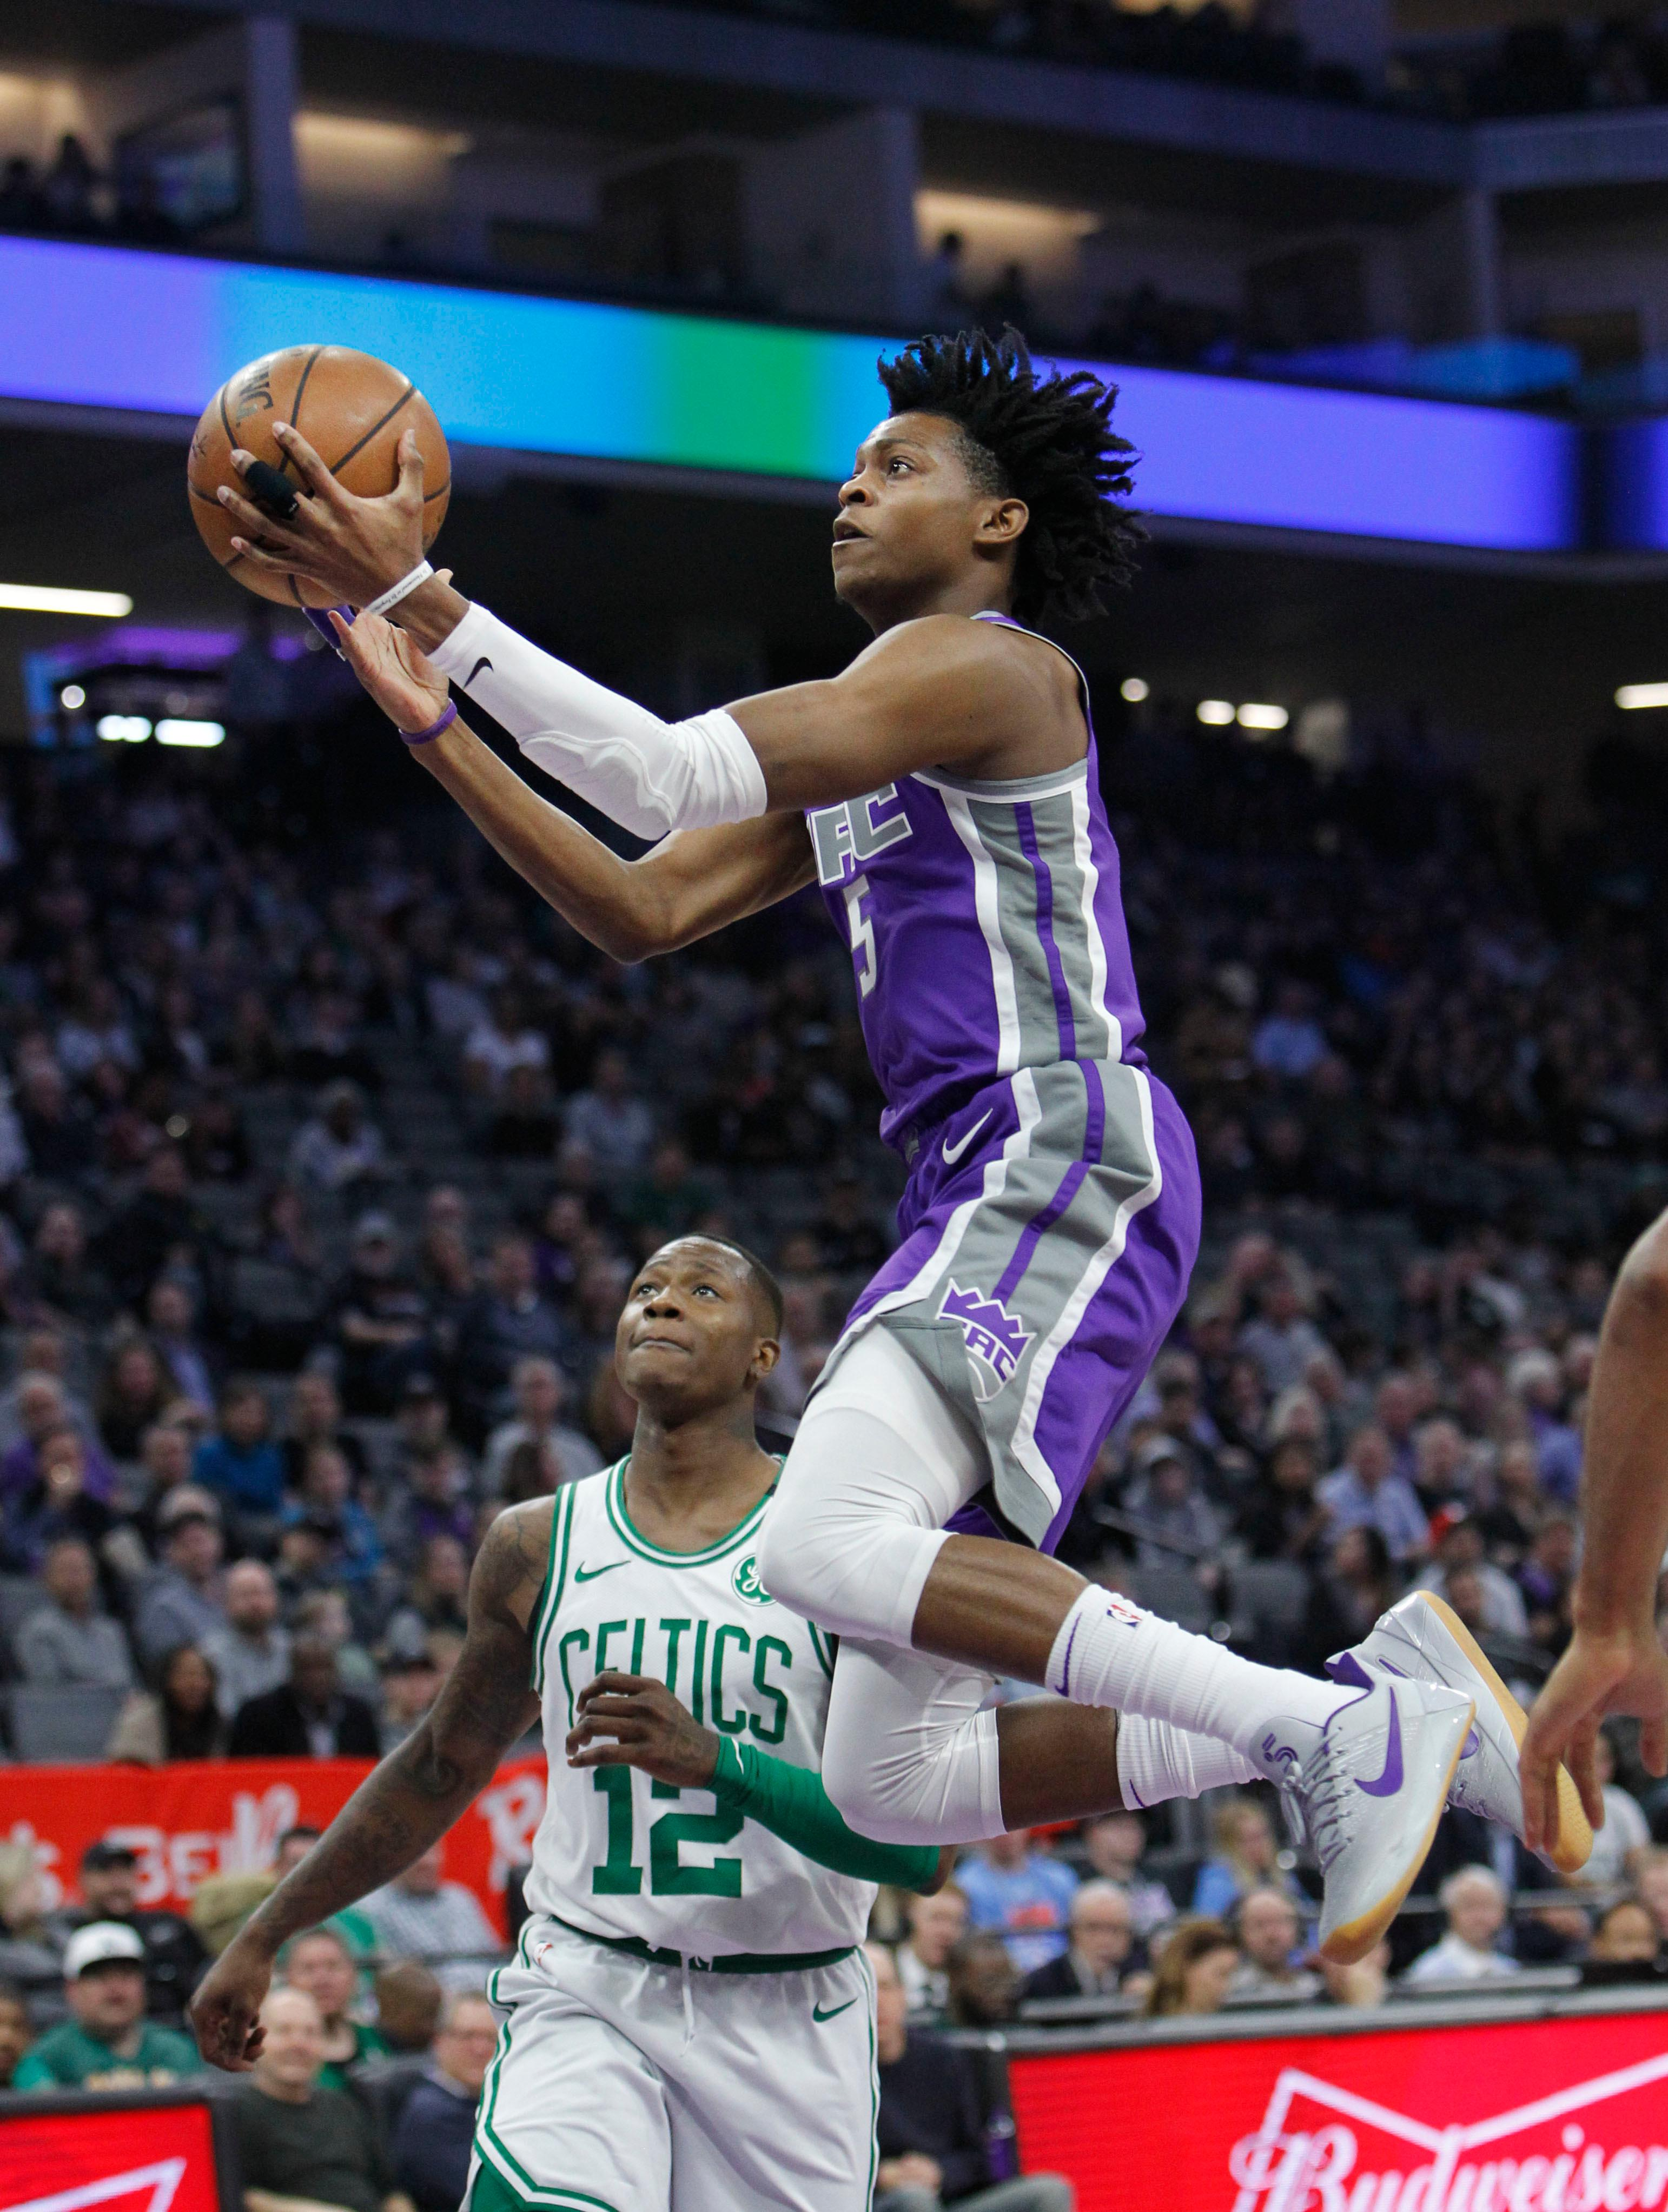 Sacramento Kings guard De'Aaron Fox (5) drives to the basket against Boston Celtics guard Terry Rozier (12) during the first half of an NBA basketball game in Sacramento, Calif., Sunday, March 25, 2018. (AP Photo/Steve Yeater)